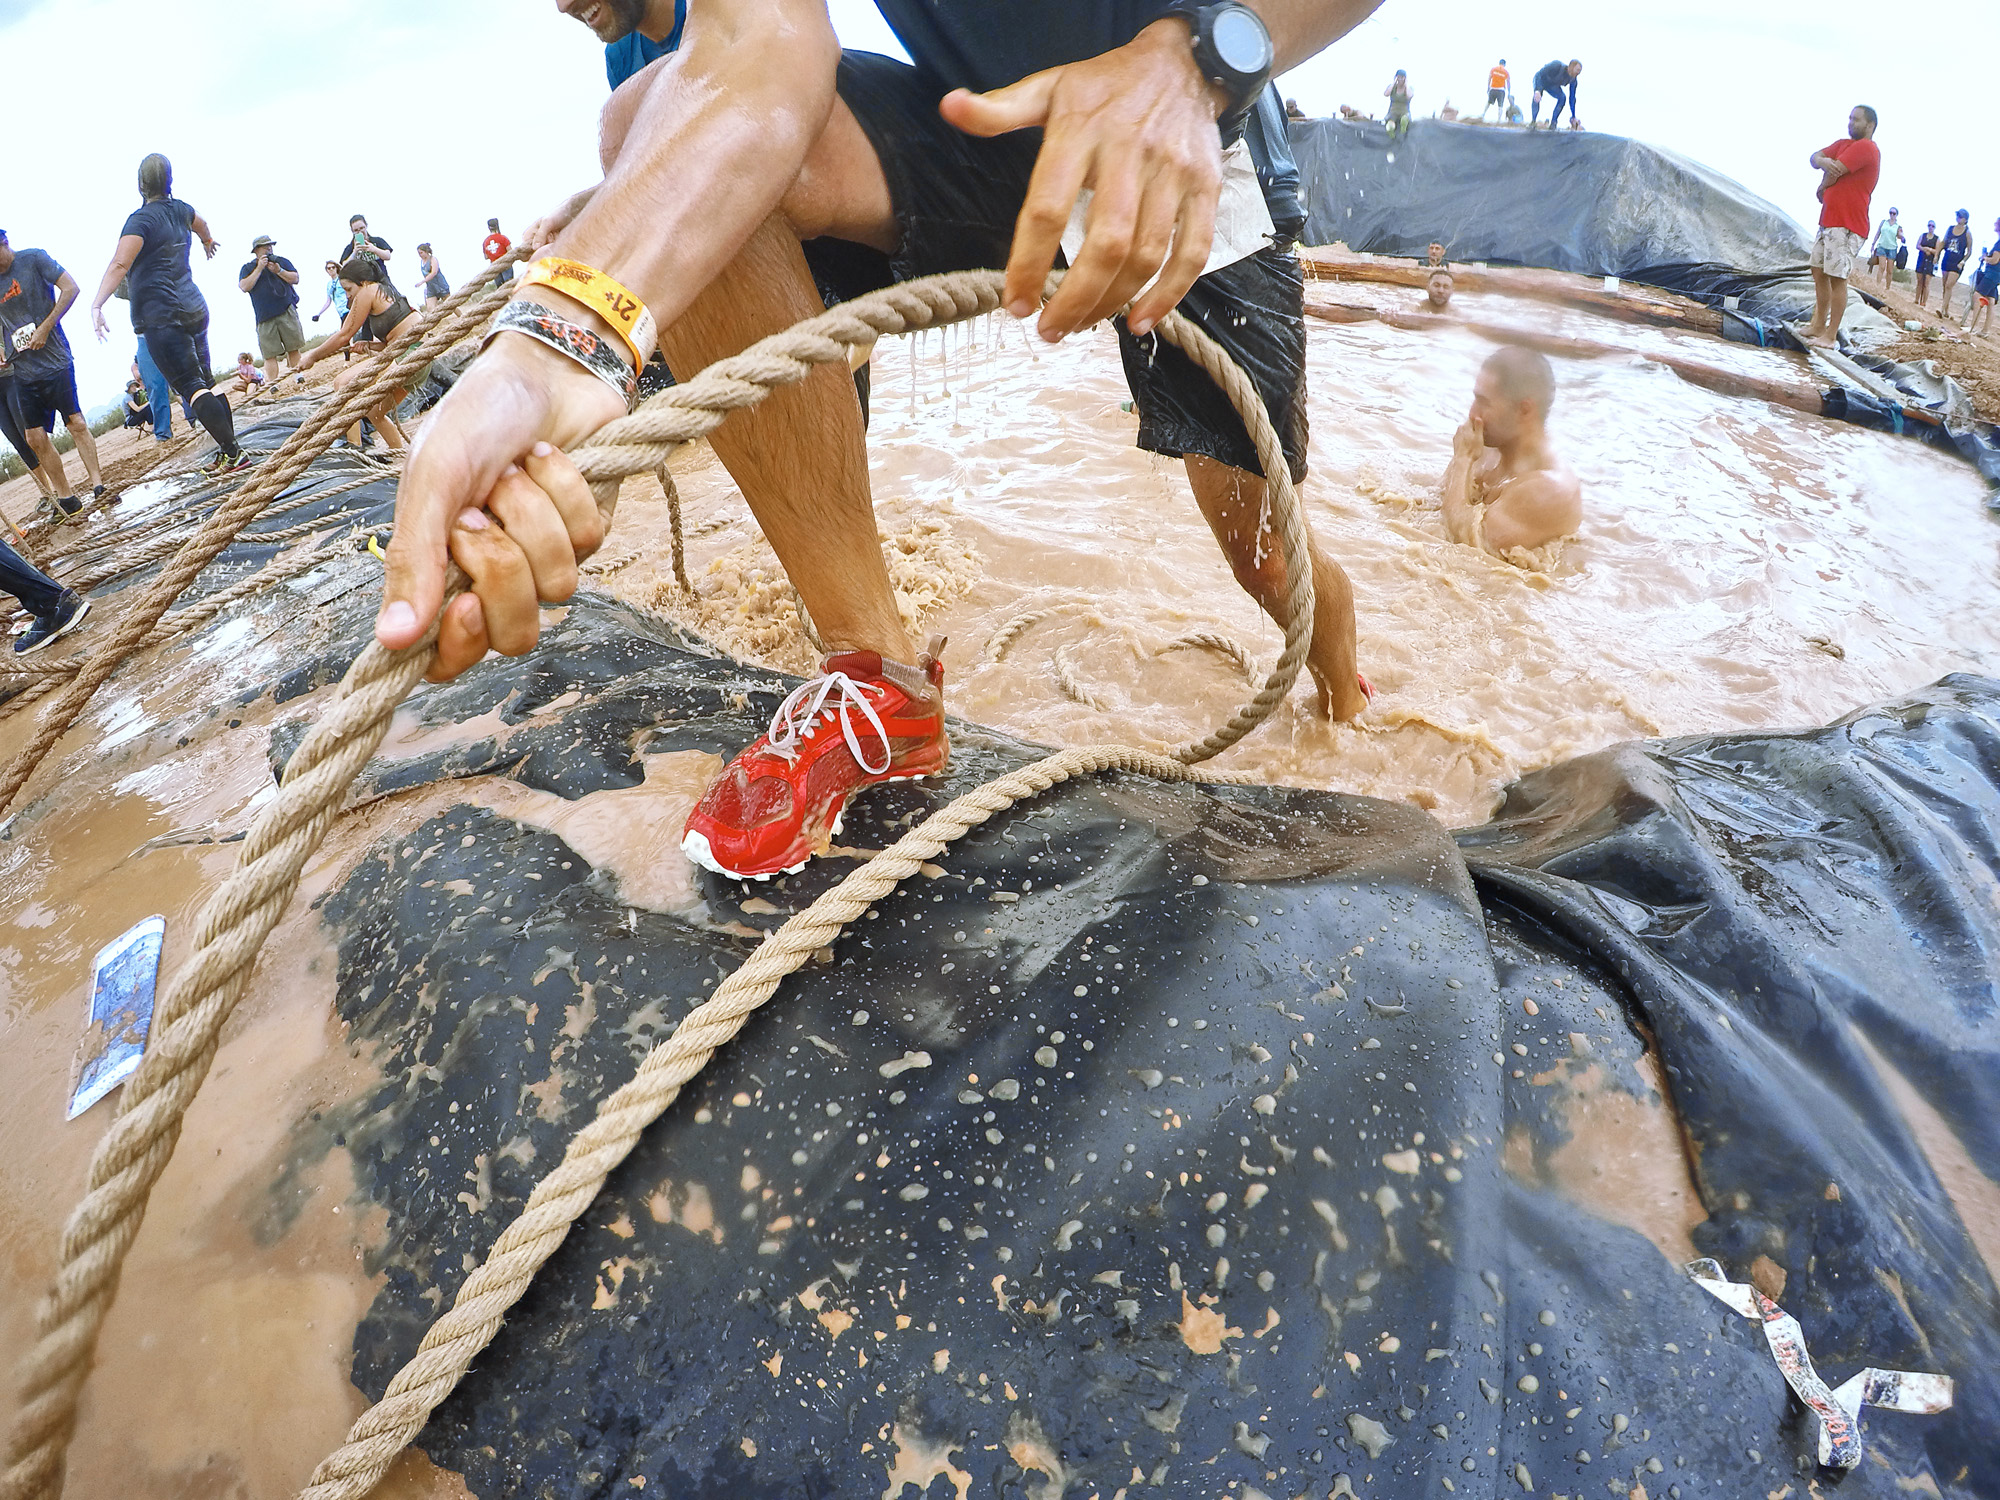 All Out Crush: Merrell Shoe For Tough